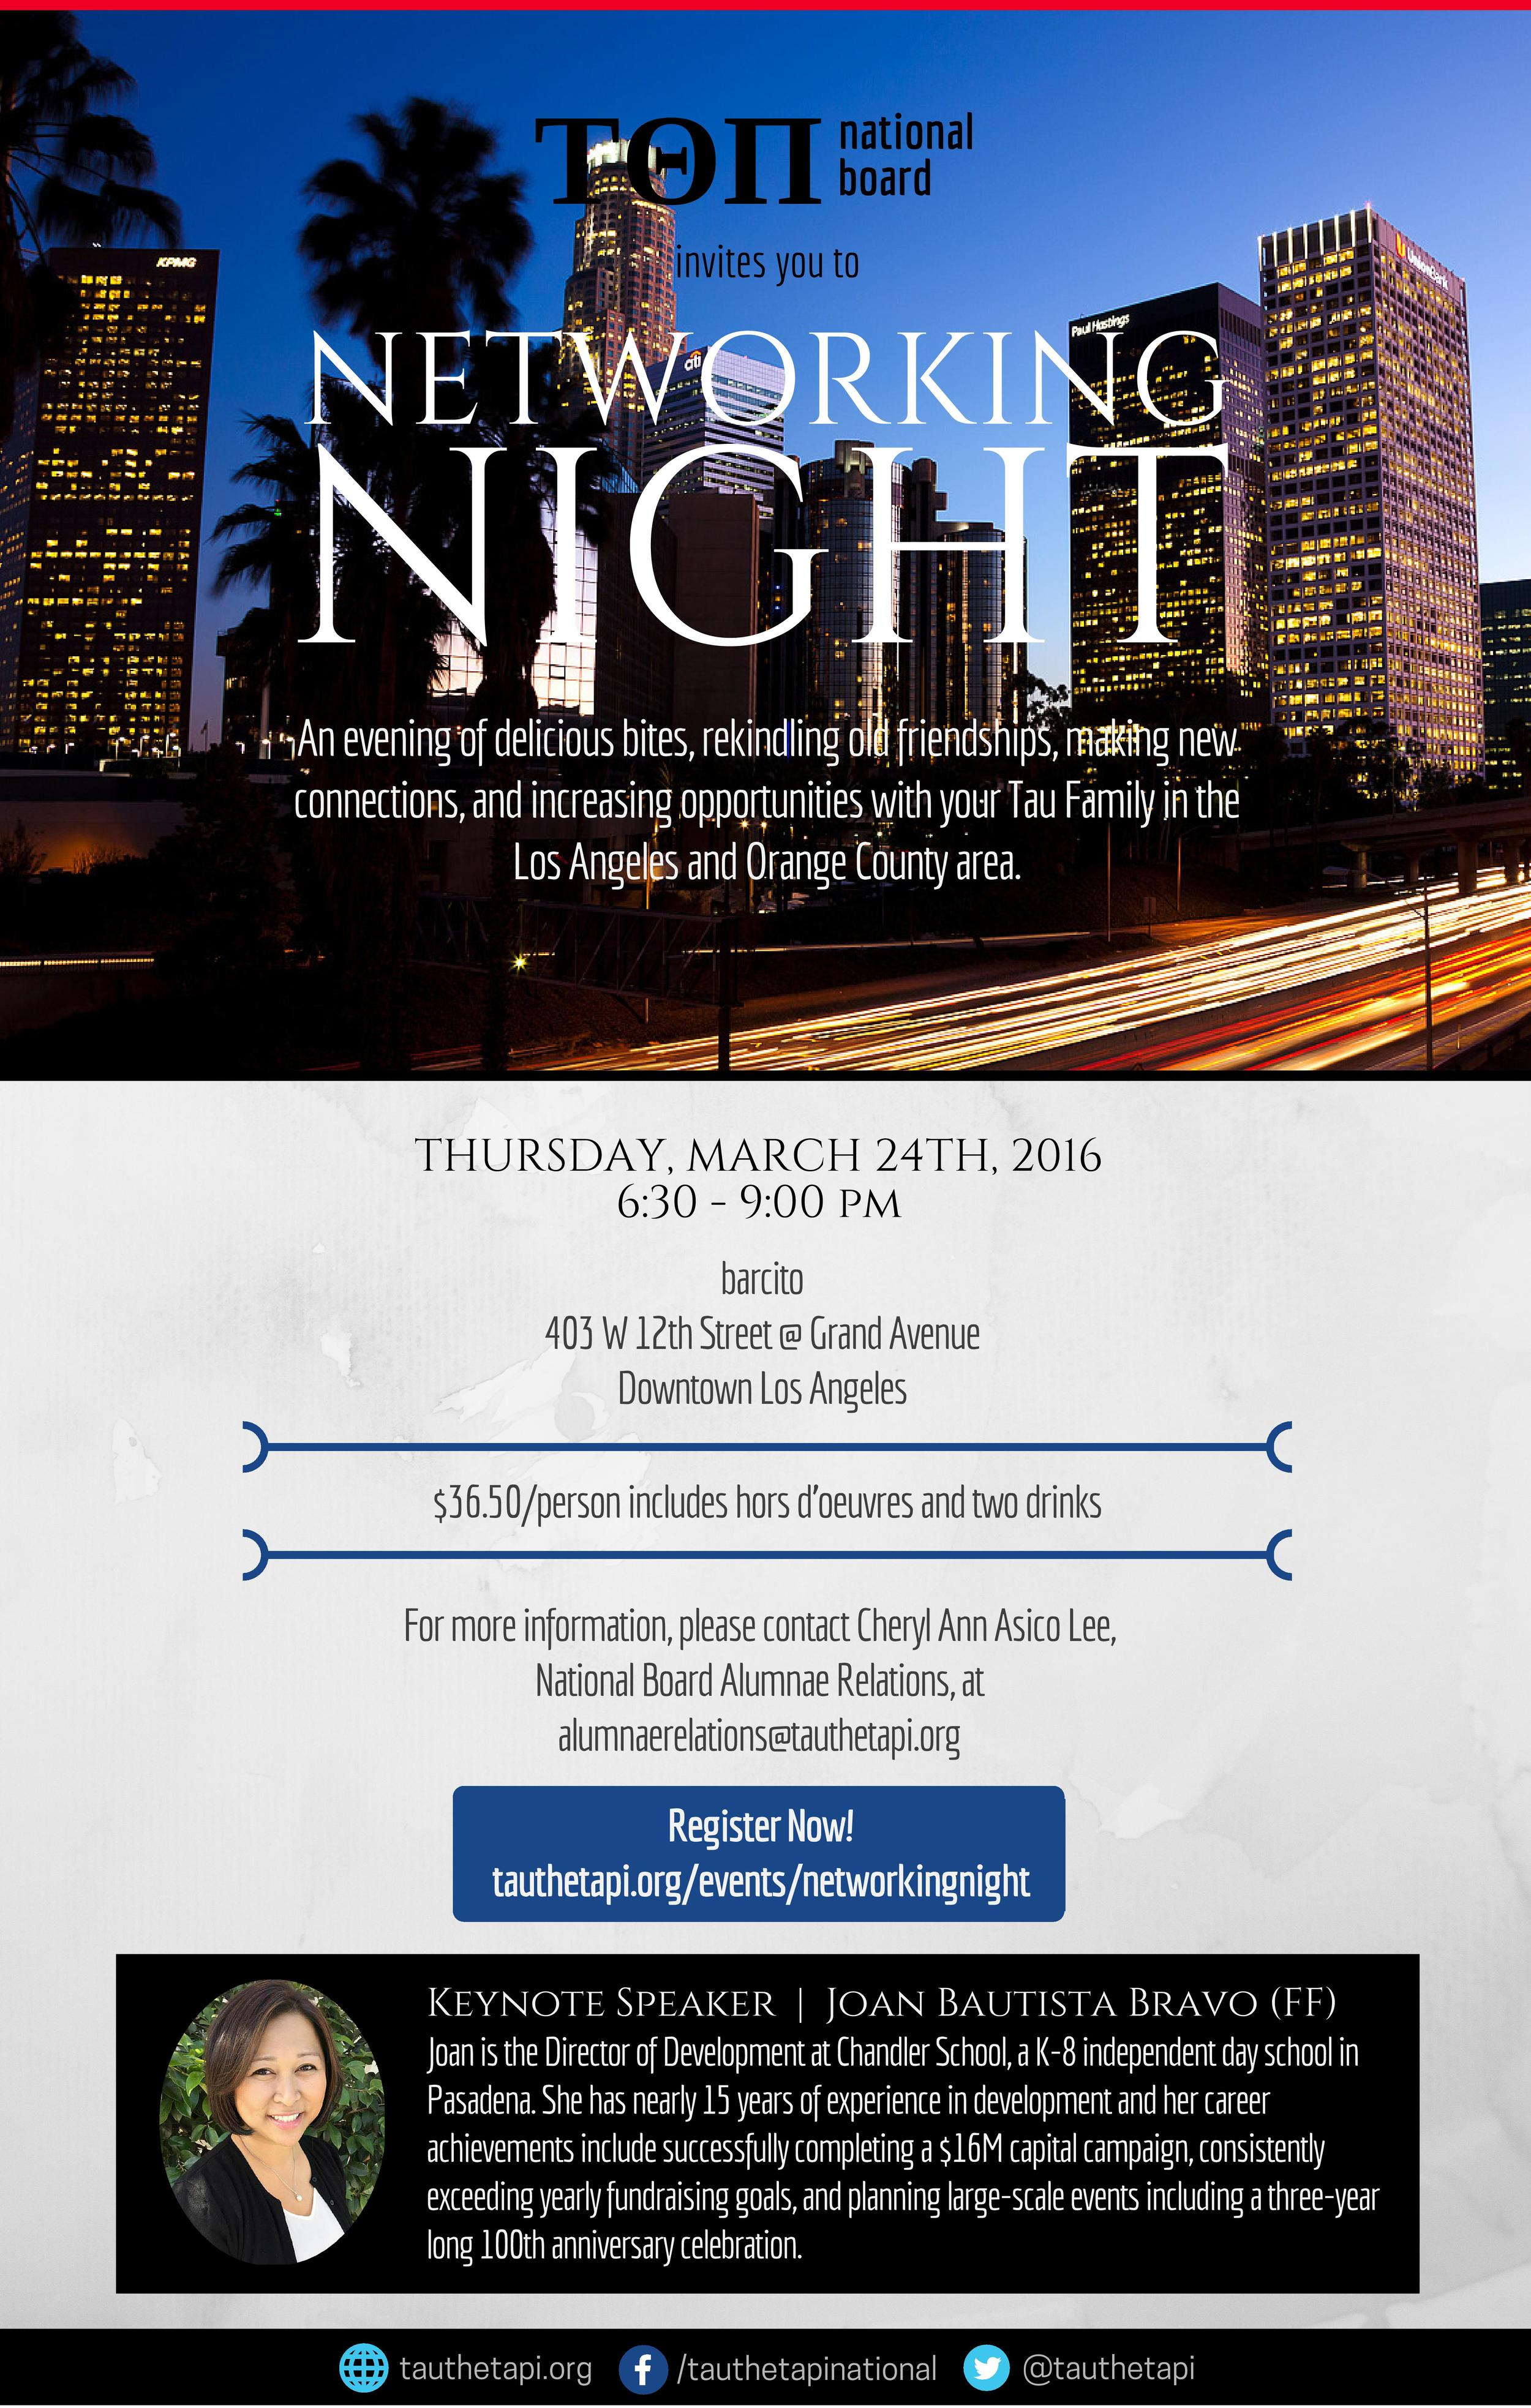 Ticket sales have closed. If you have any further questions please email alumnaerelations@tauthetapi.org